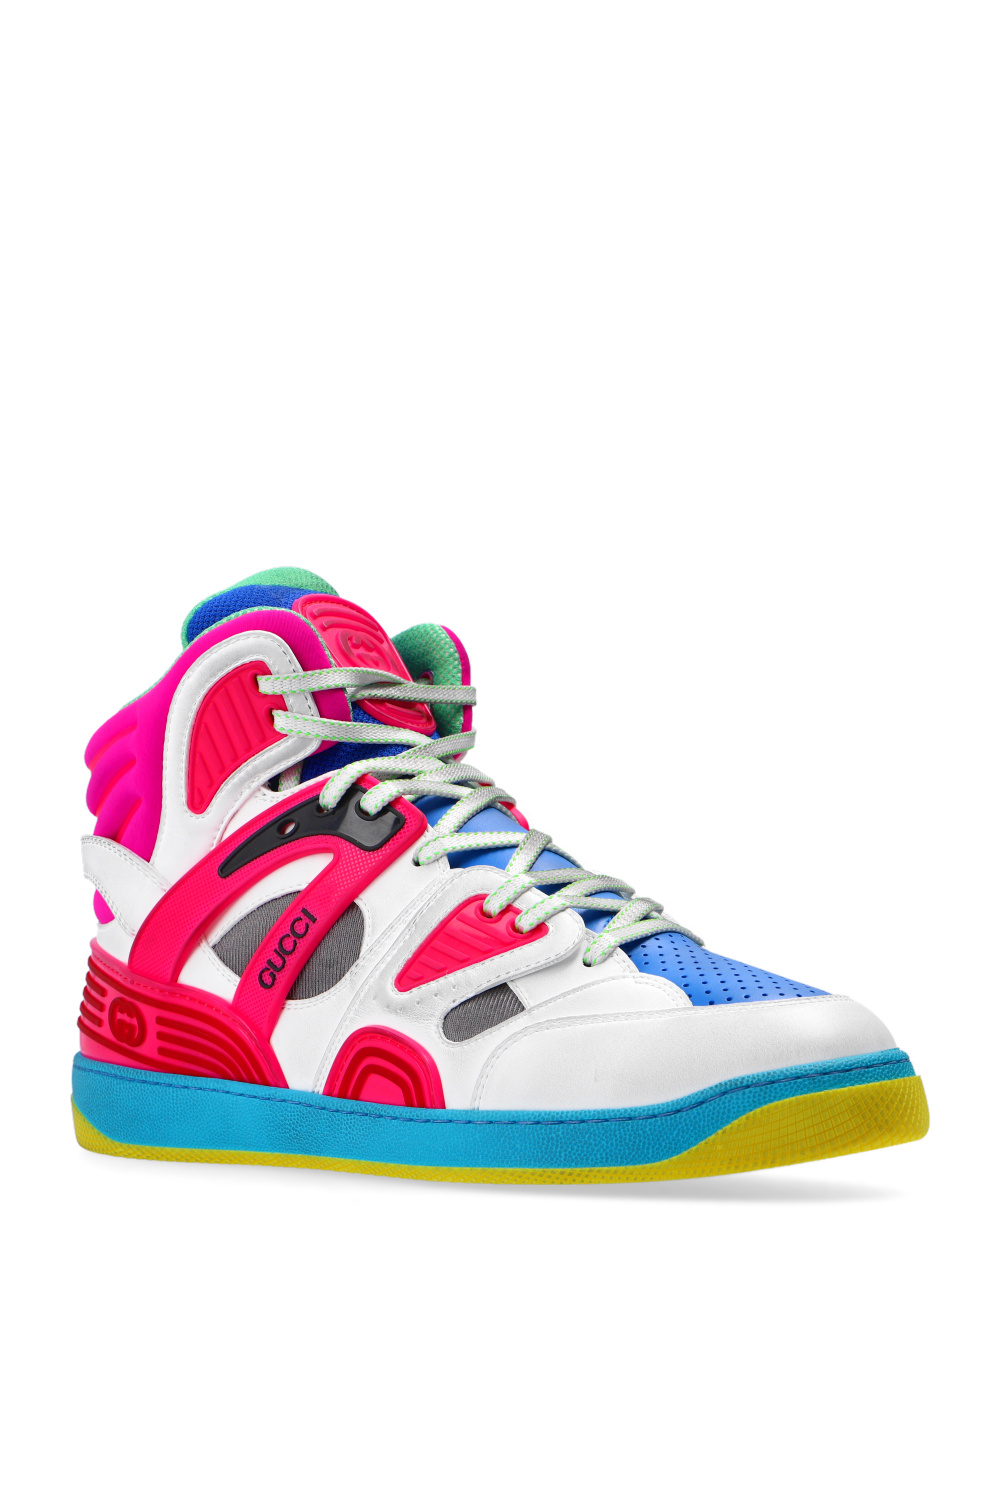 Gucci 'Gucci Basket' high-top sneakers